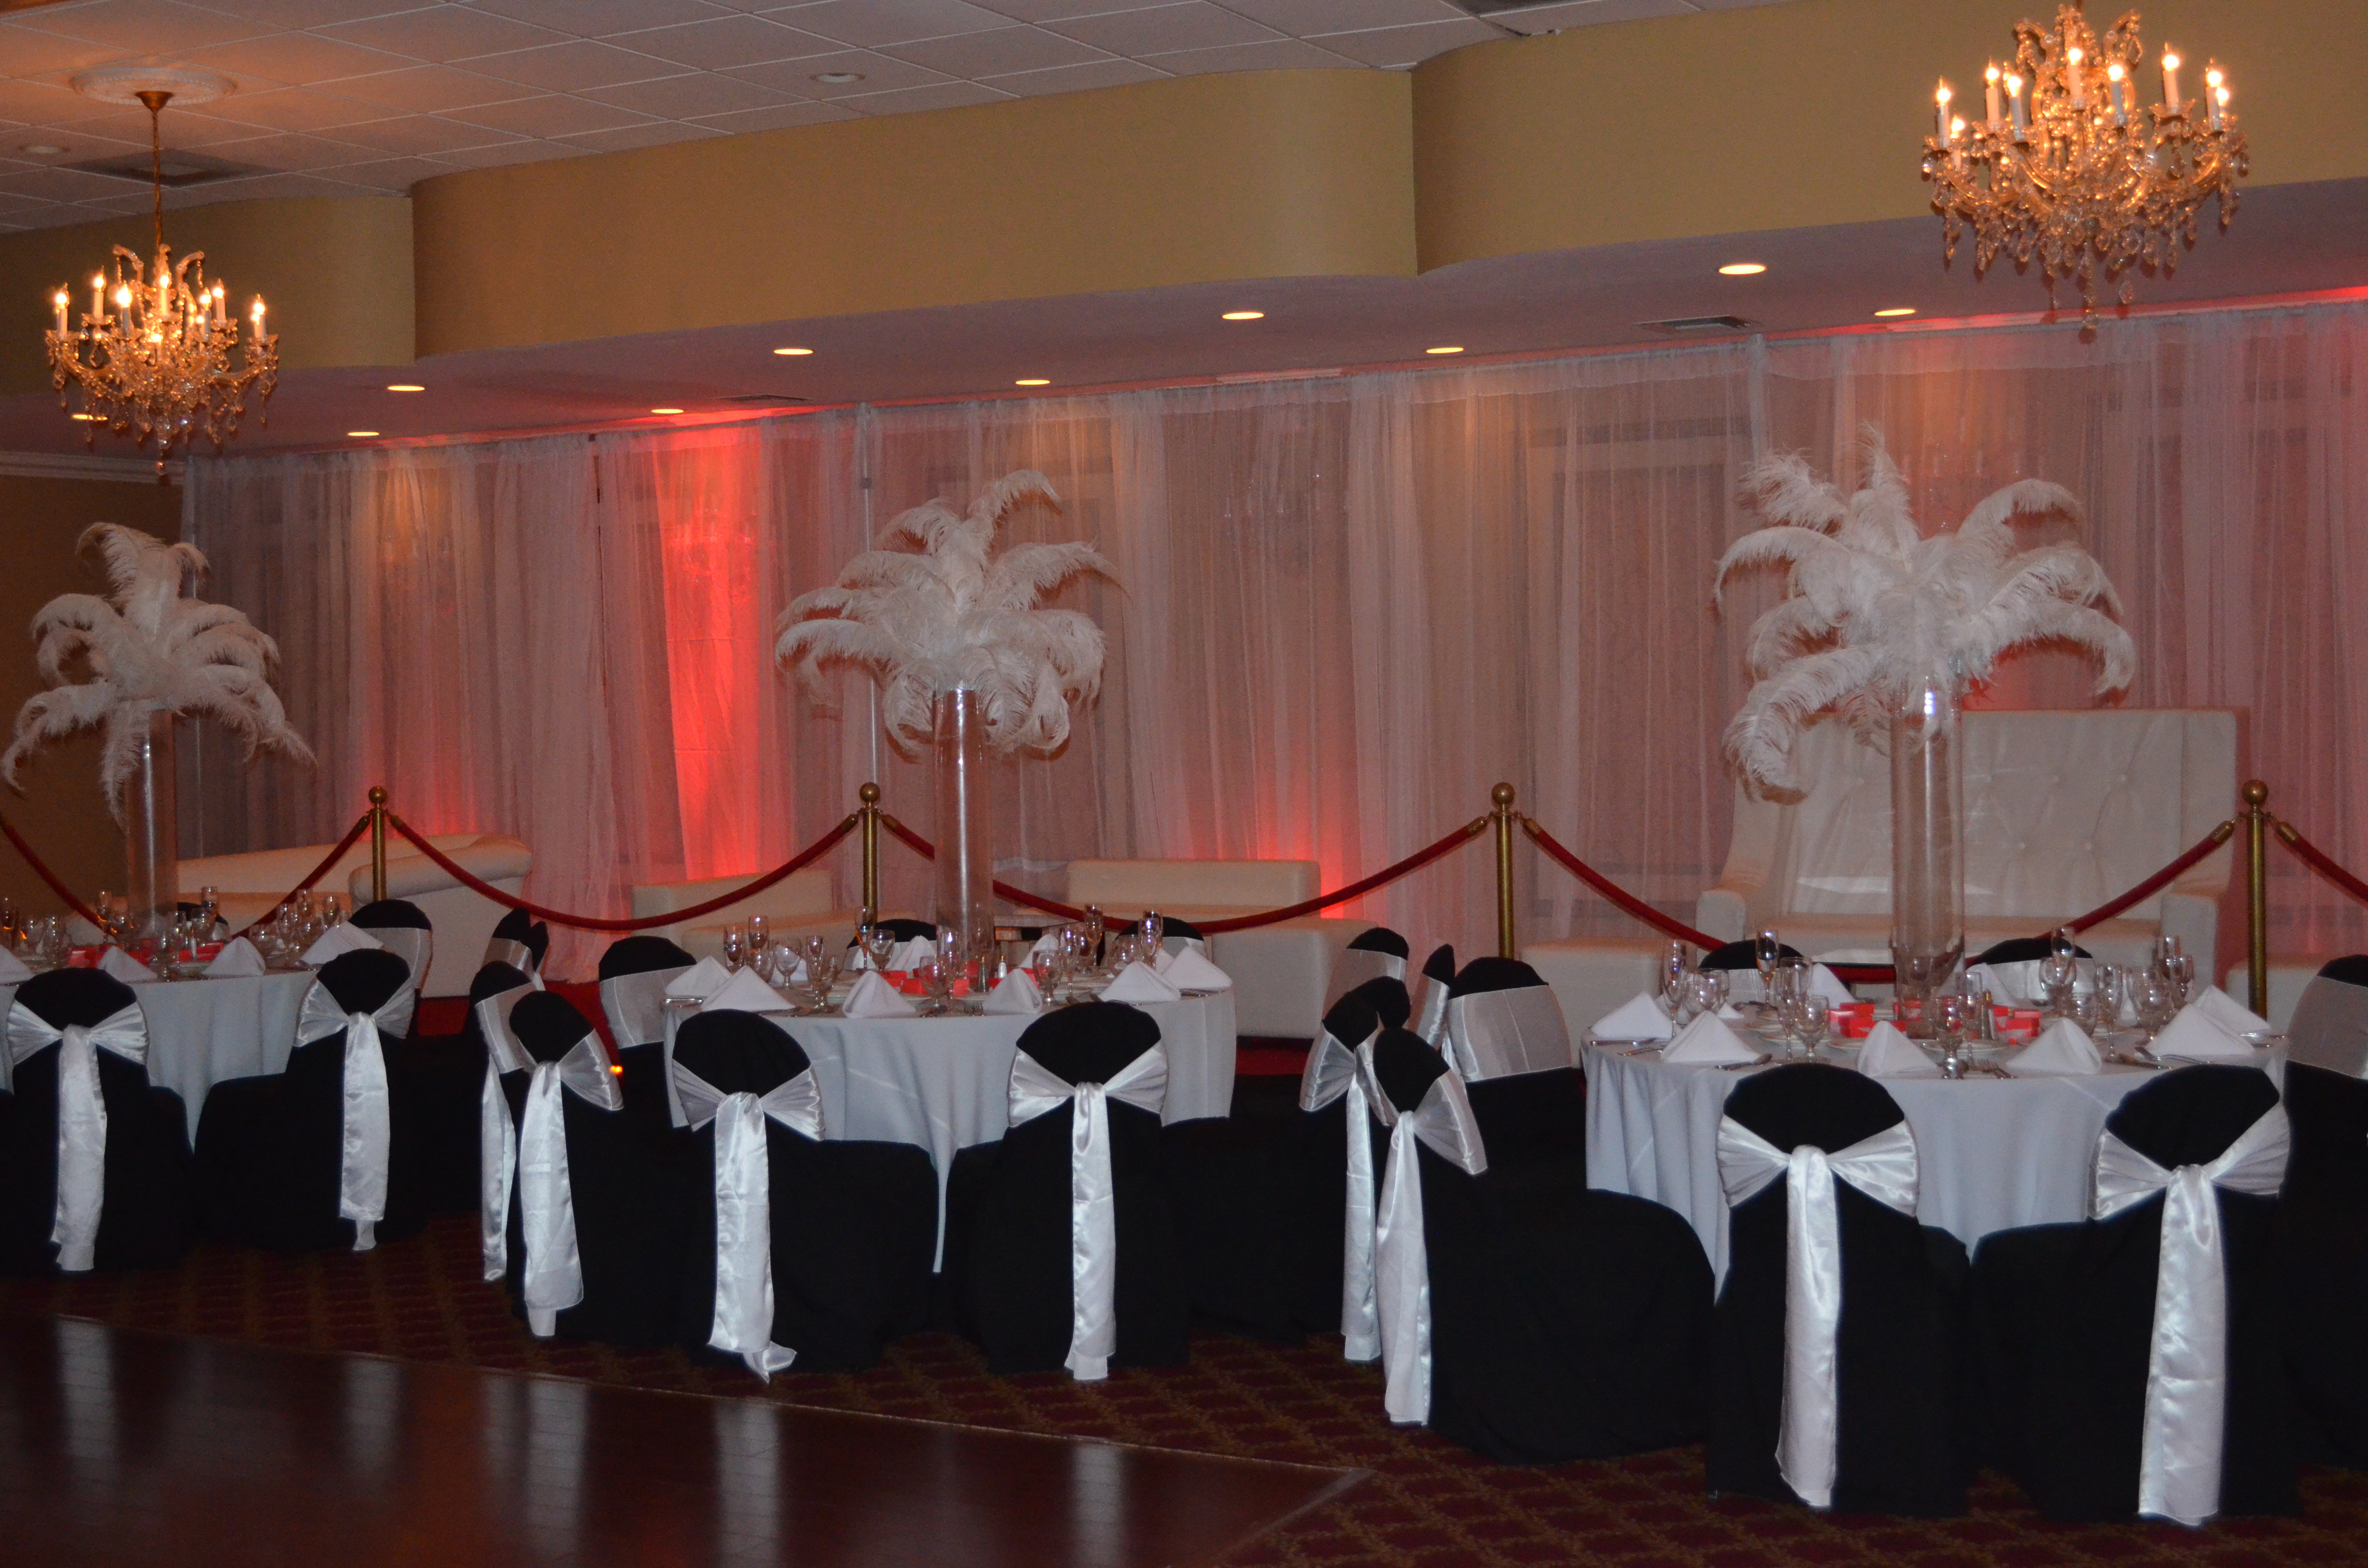 Grand Salon Wedding Venues Miami Laurette 15th Birthday Party